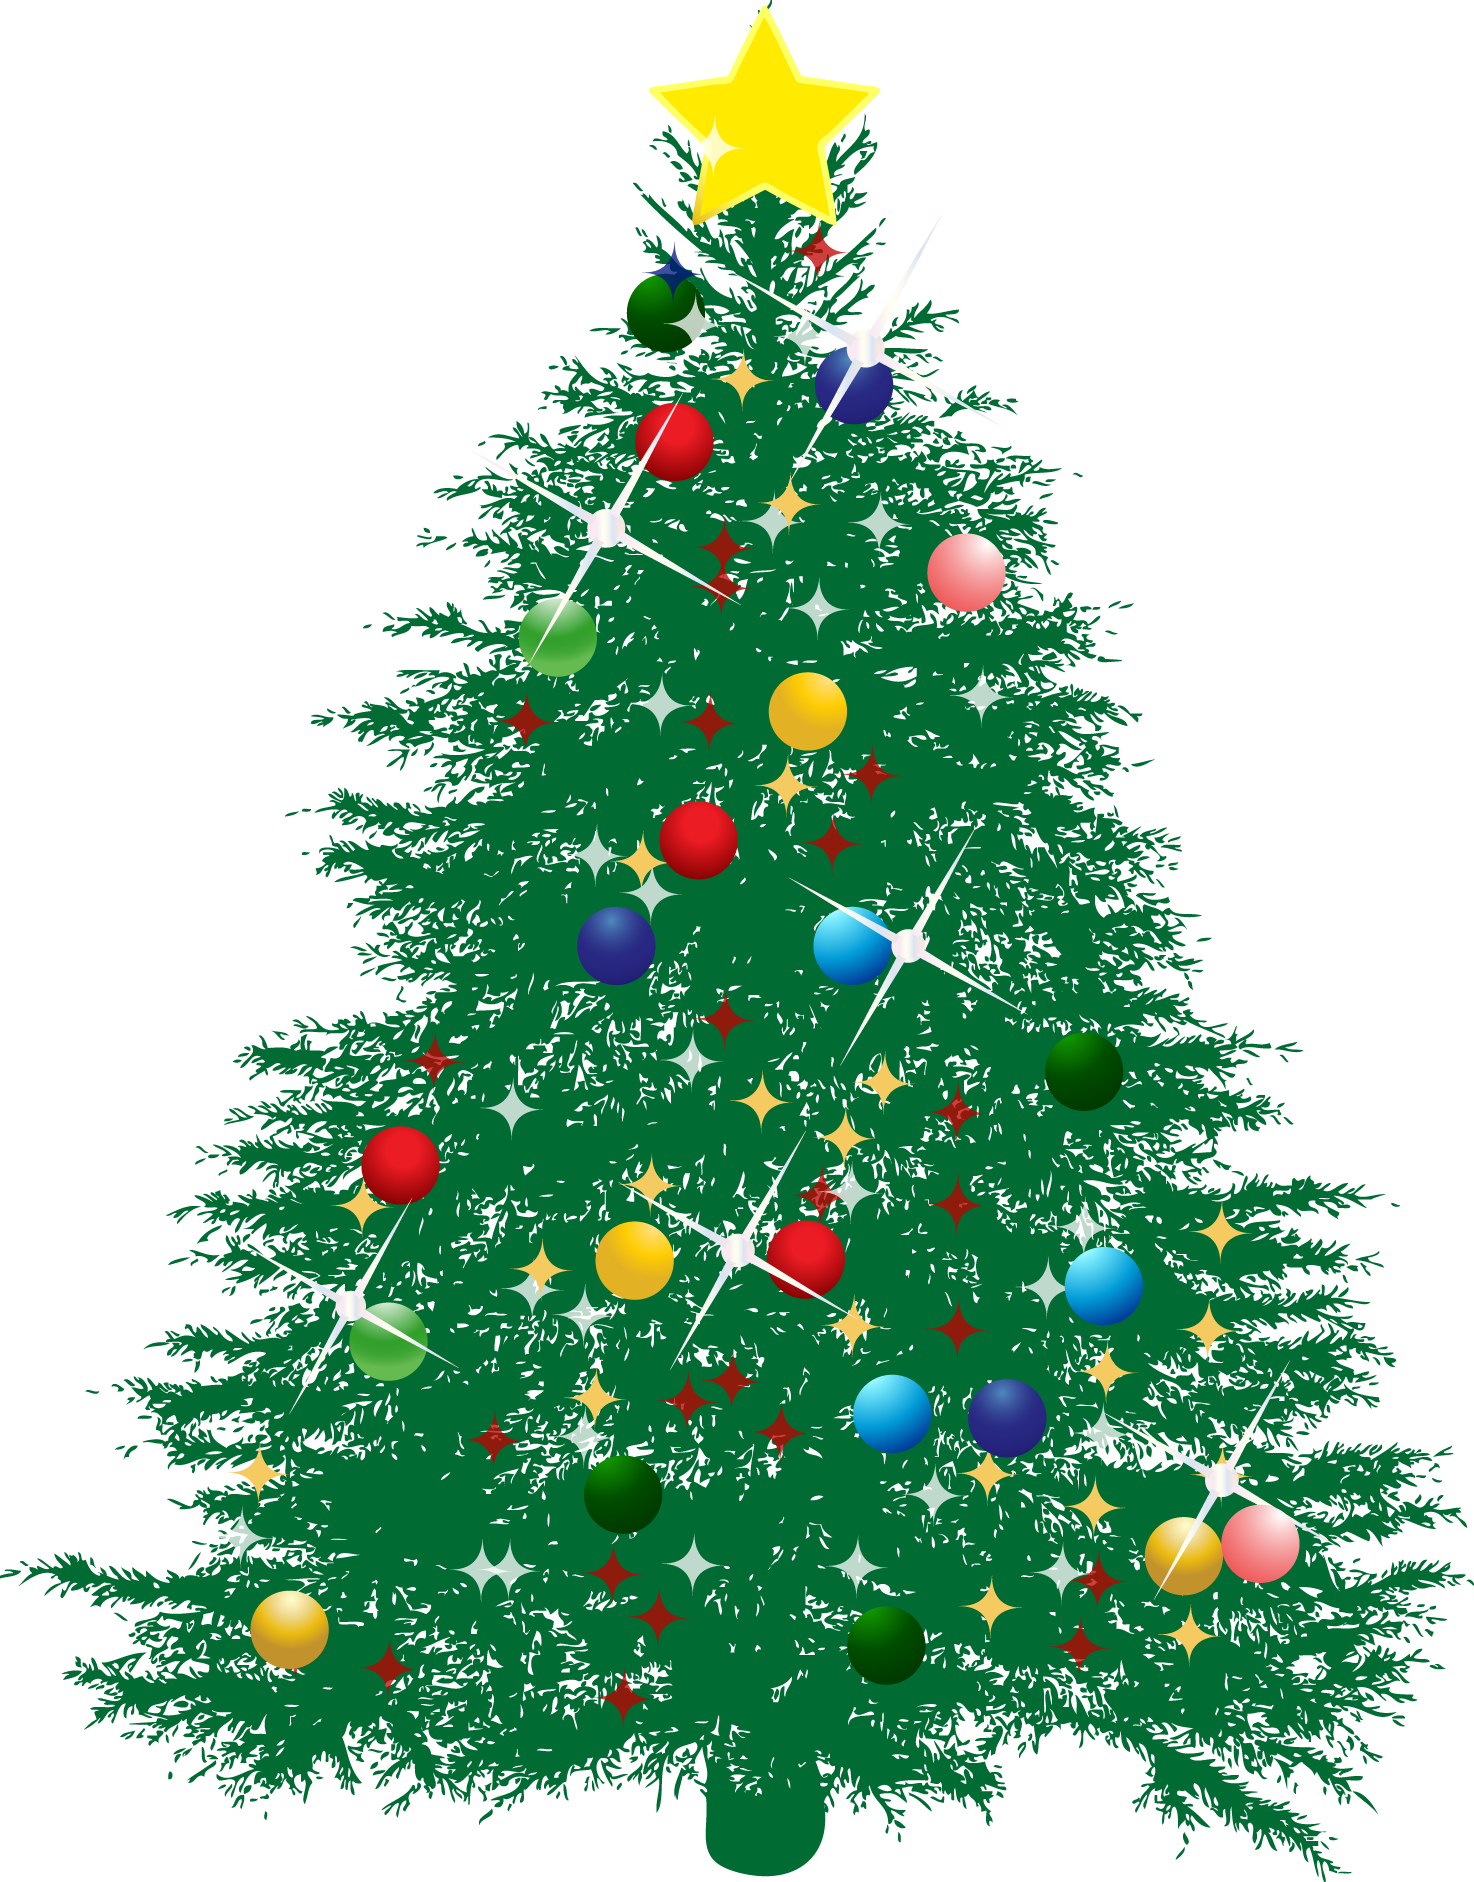 Christmas Tree Vector Image.Christmas Tree Vector Png At Getdrawings Com Free For